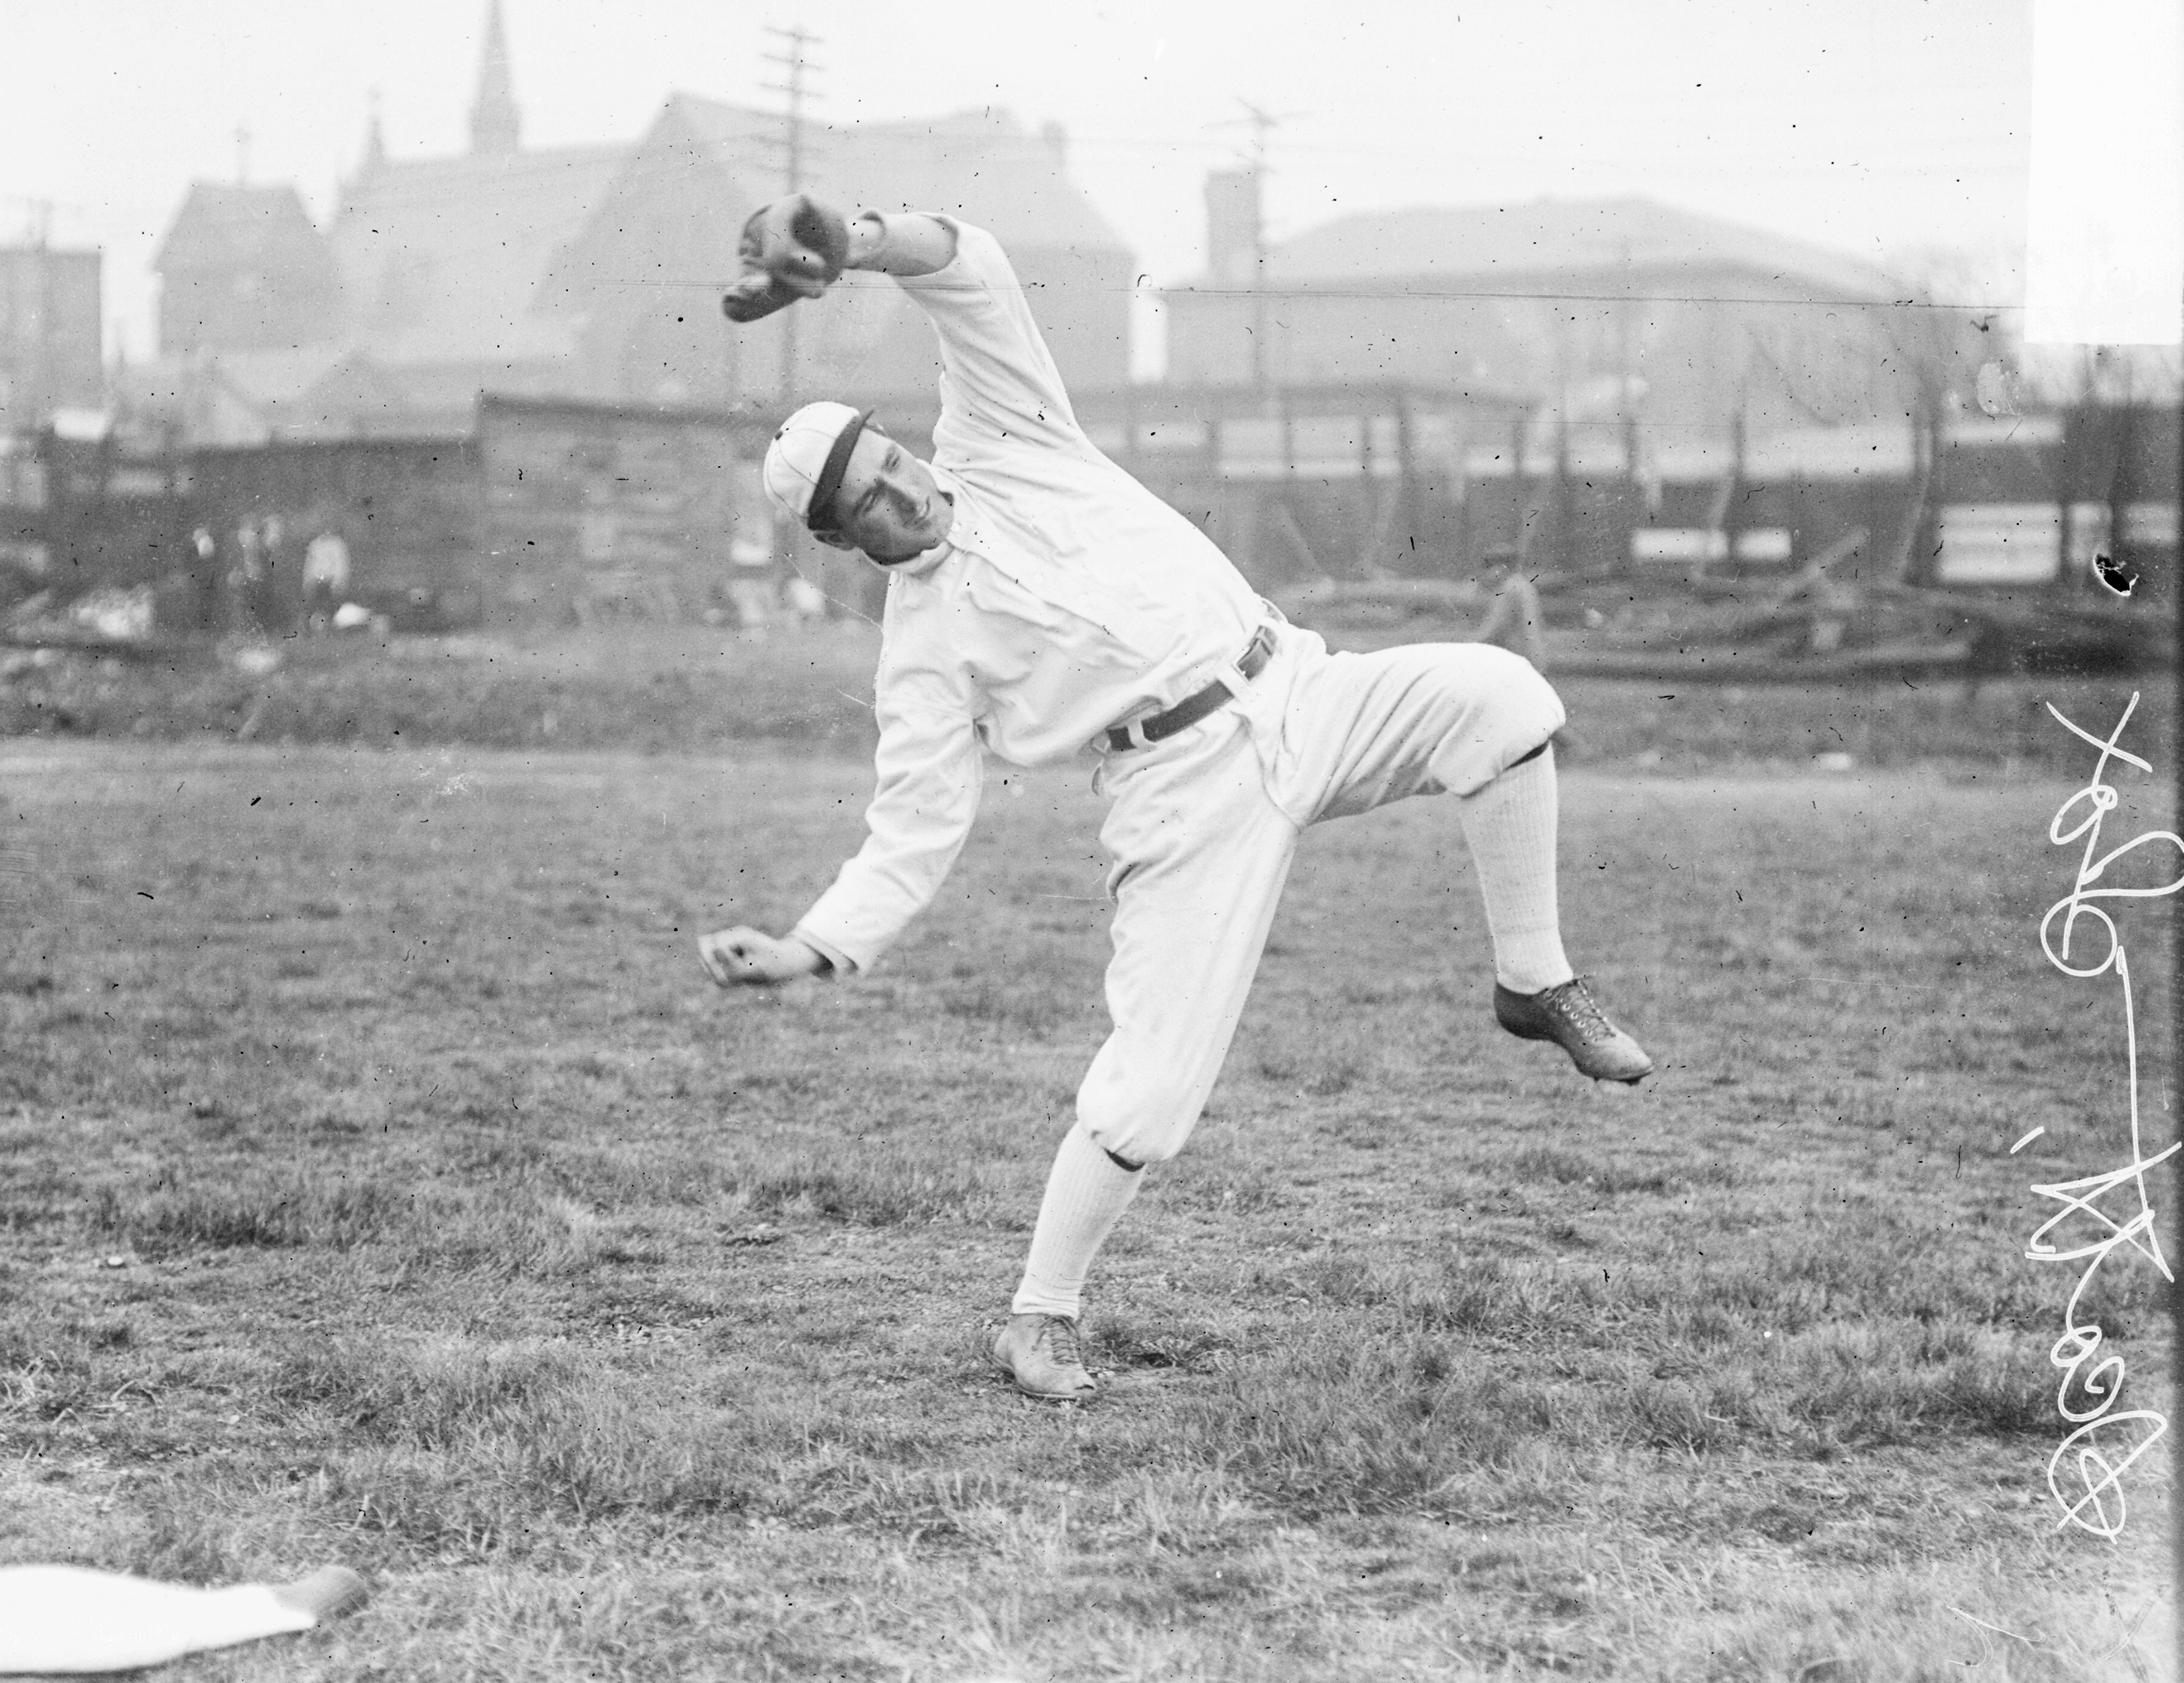 Jim Scott Warms Up For The White Sox